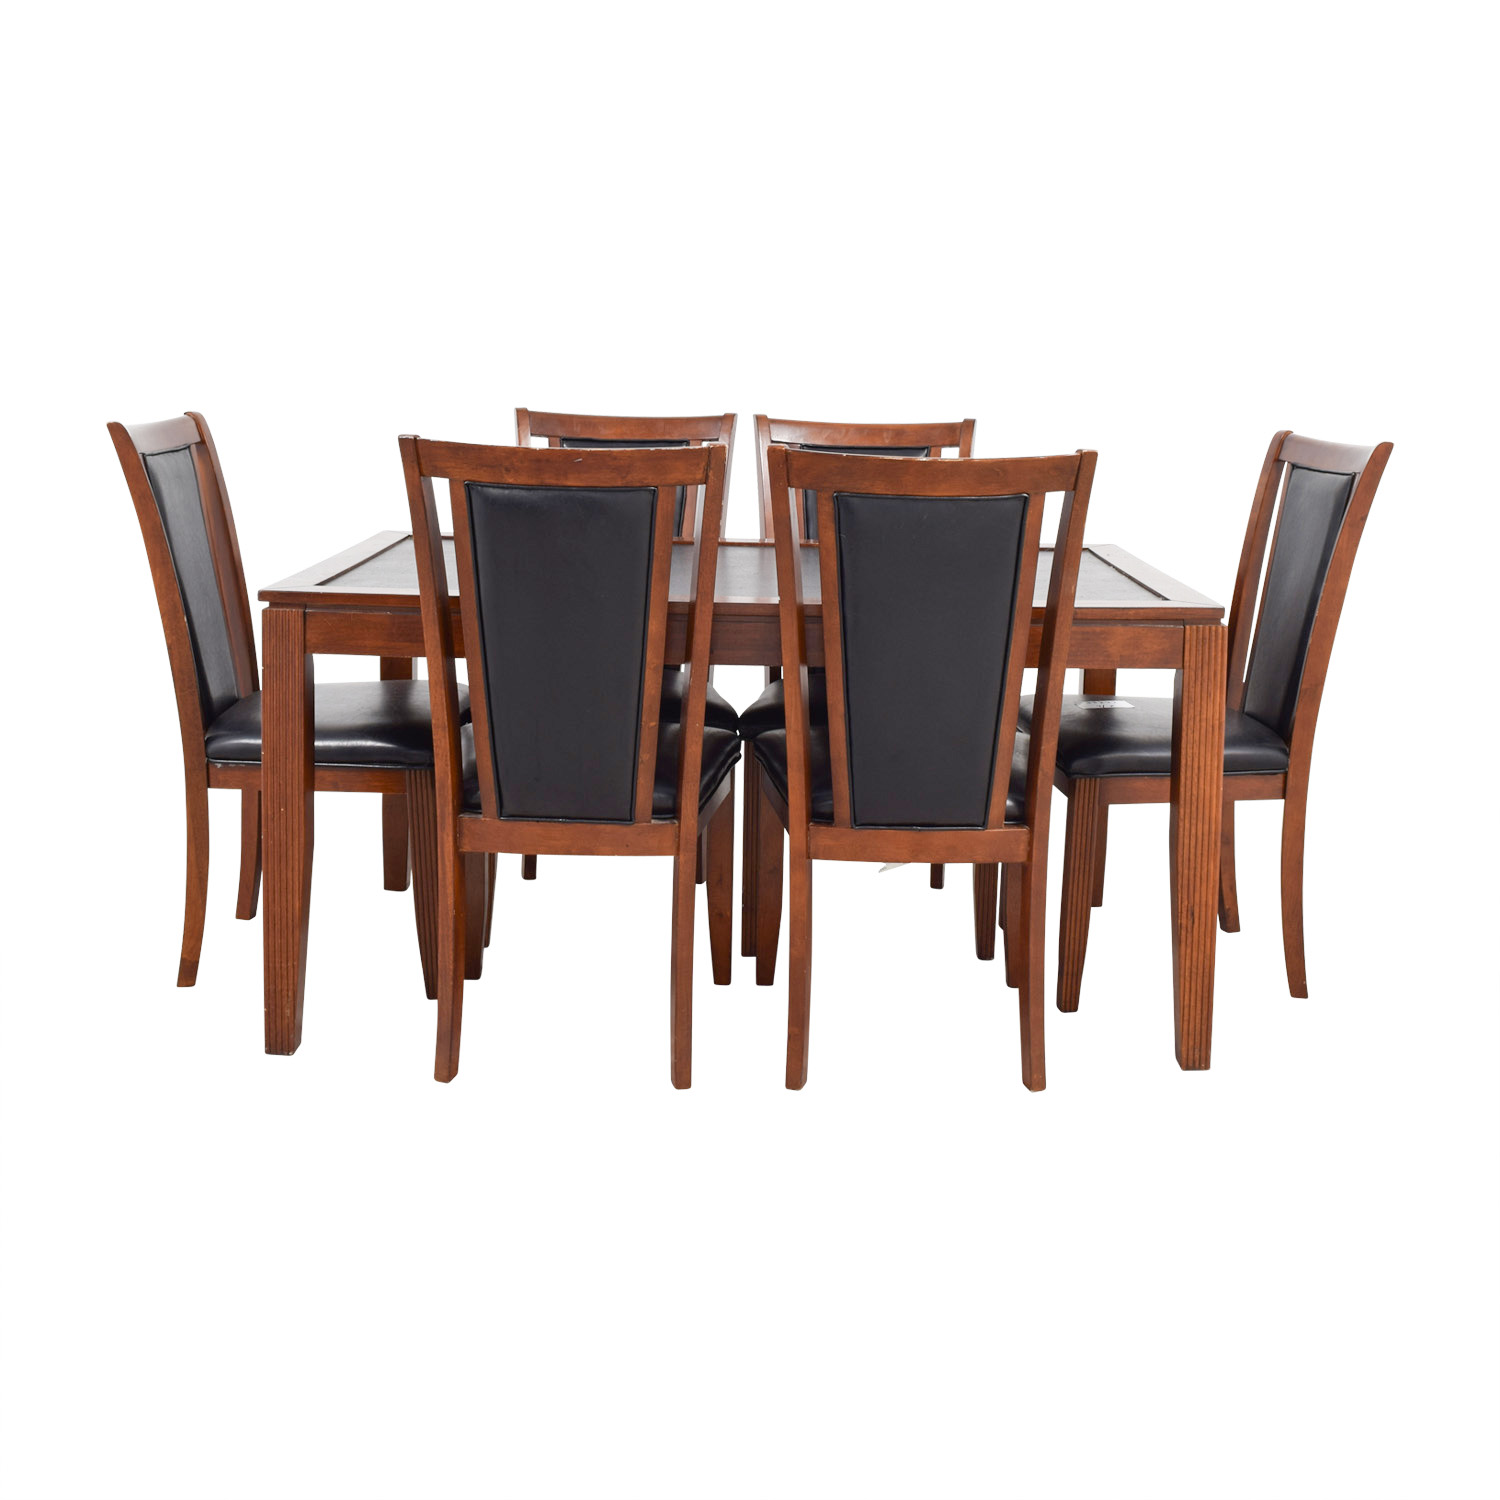 Bob's Furniture Bob's Furniture Leather and Wood Dining Set nj